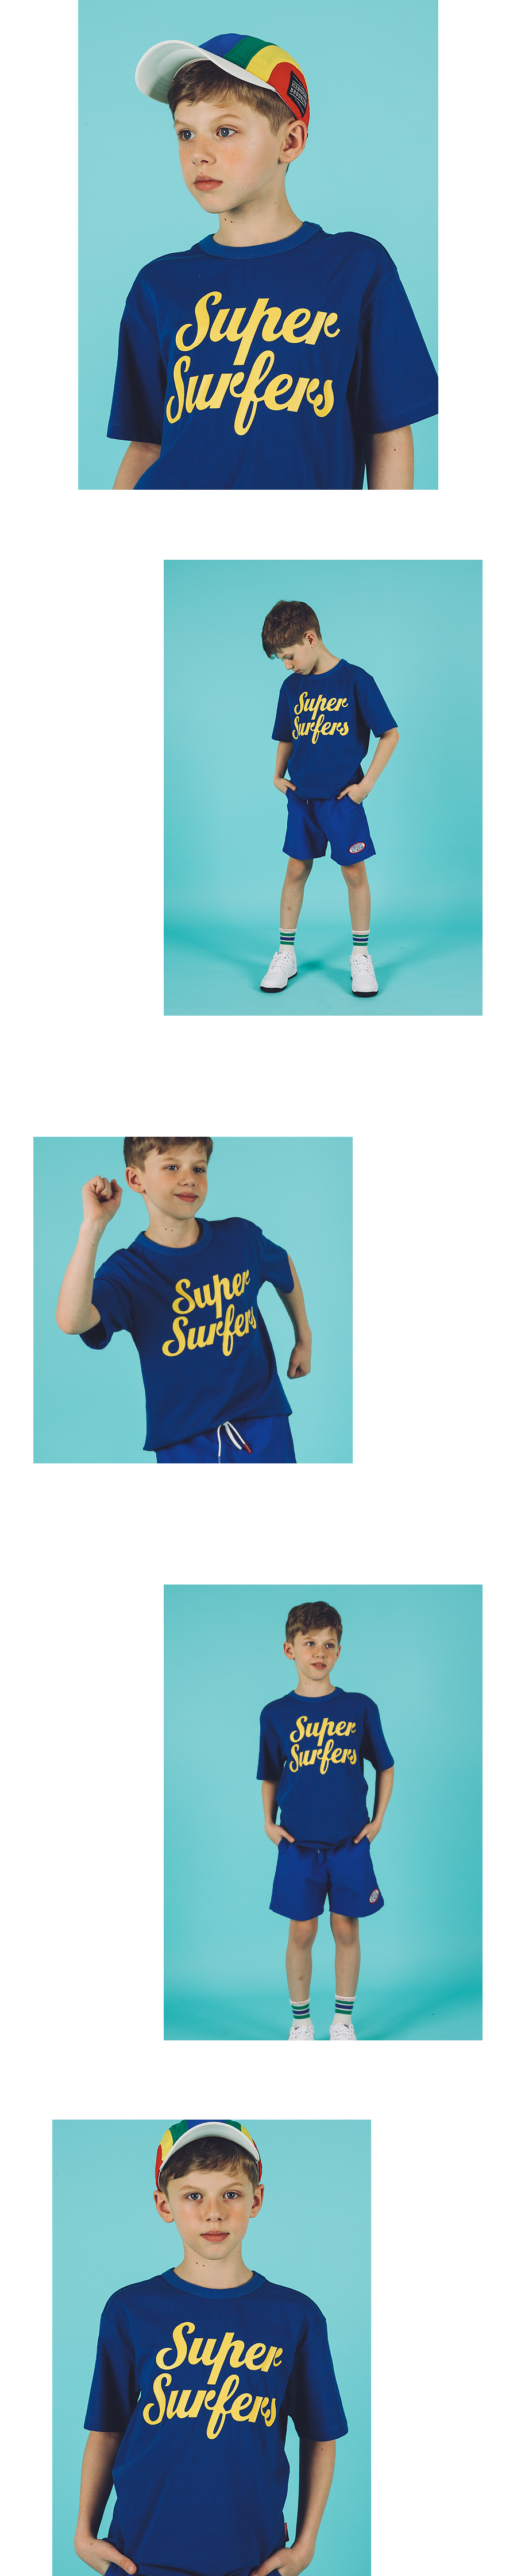 Super surfers short sleeve tee 상세 이미지